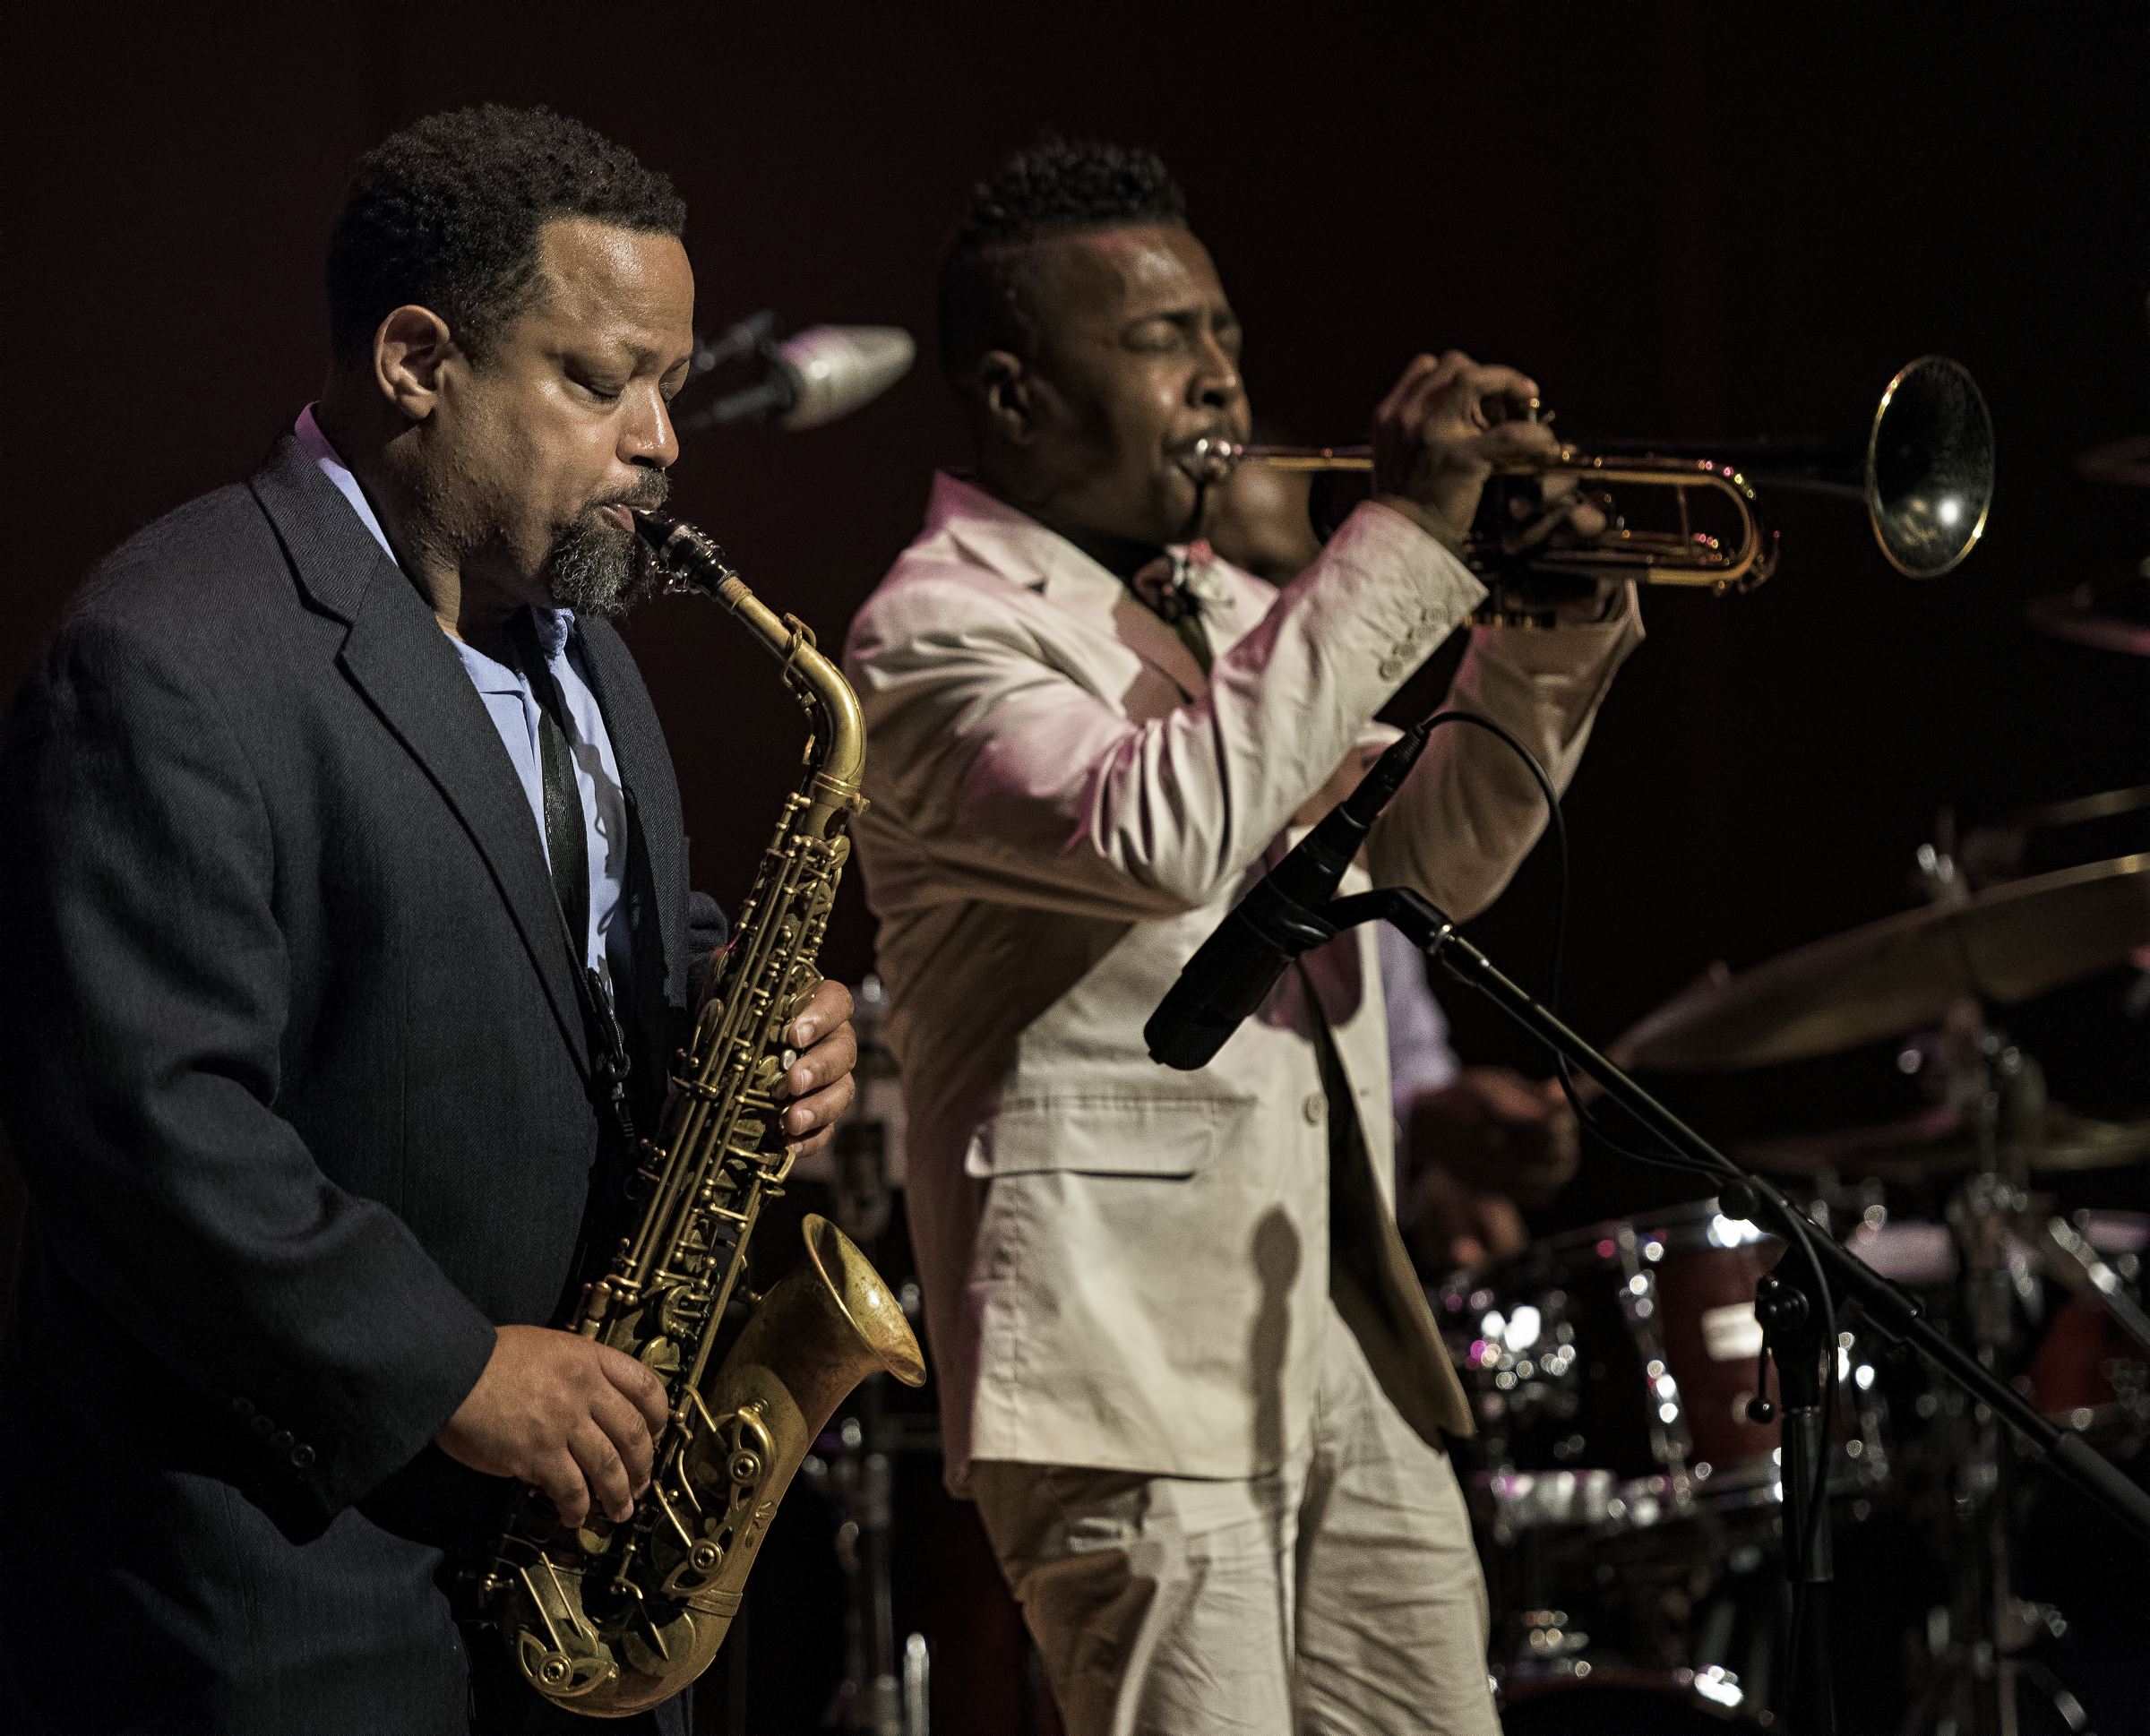 Justin Robinson And Roy Hargrove With Quintet At The Musical Instrument Museum (mim) In Phoenix